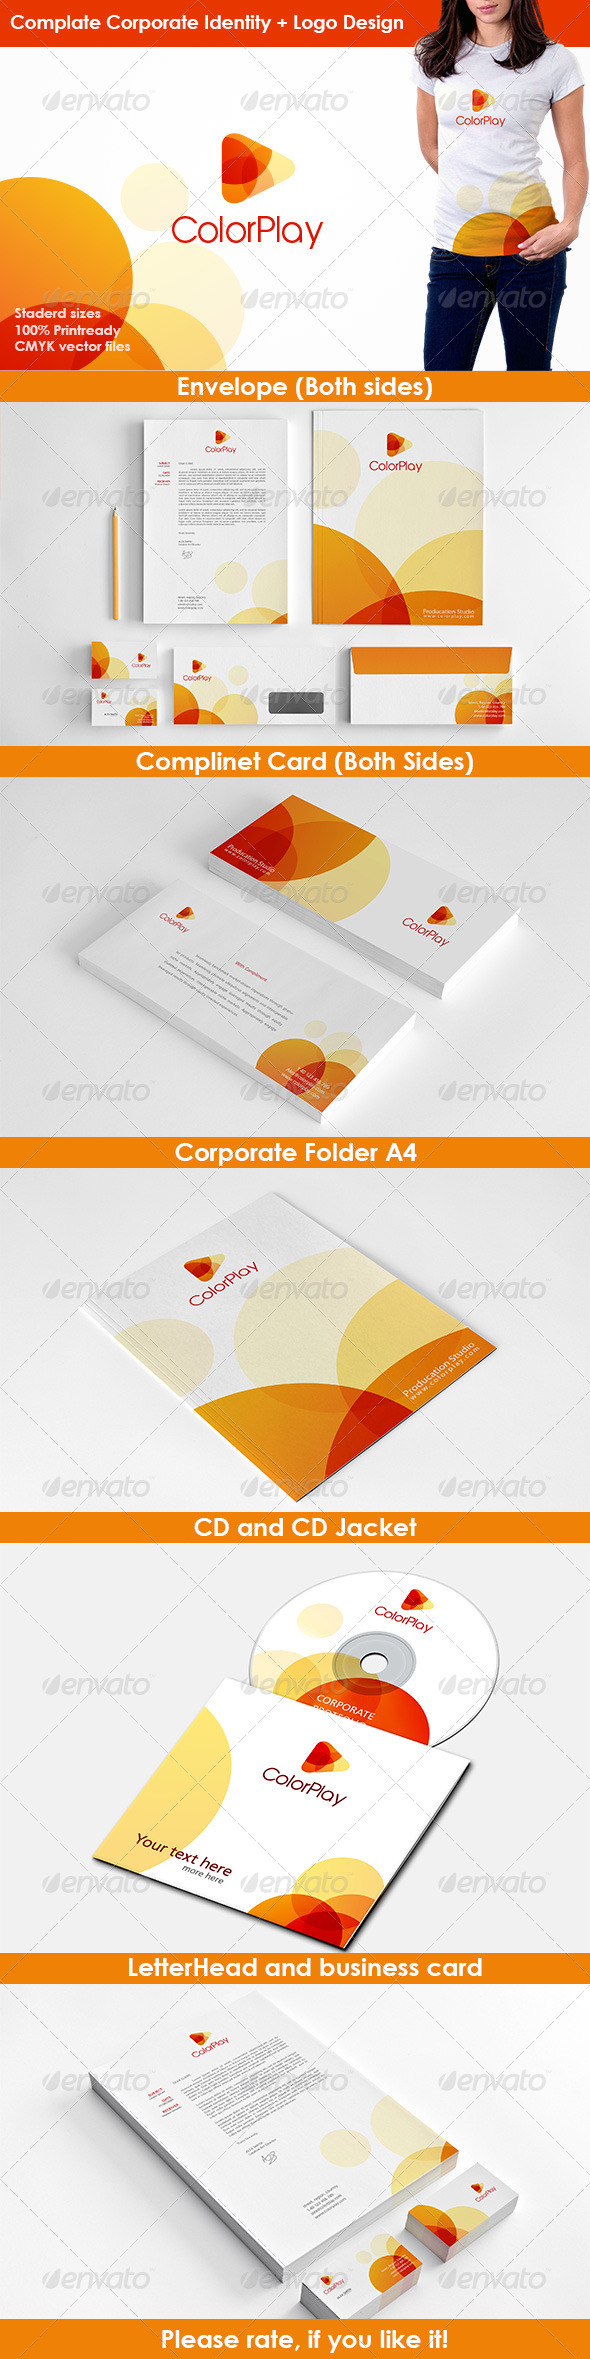 Color Play Studio Stationery - Stationery Print Templates